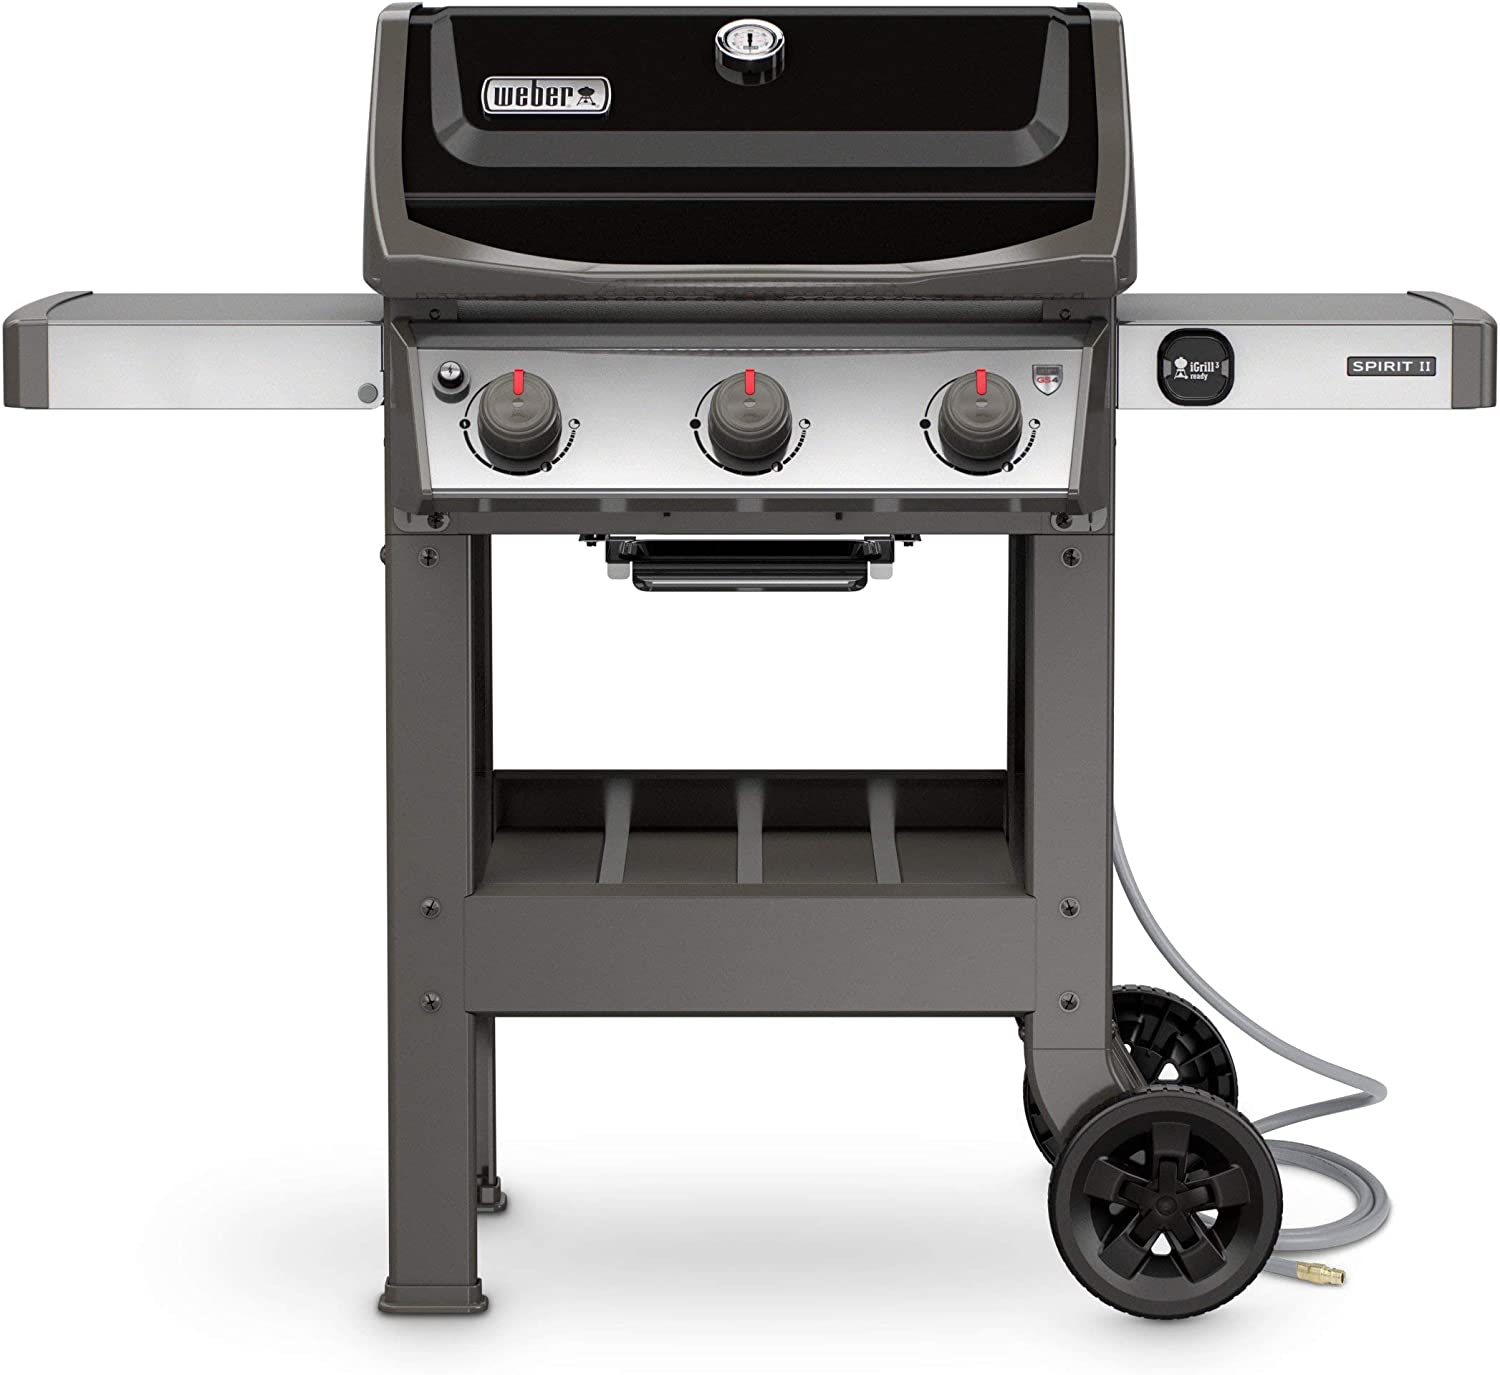 Weber Spirit II E-310 3-Burner Natural Gas Grill Review